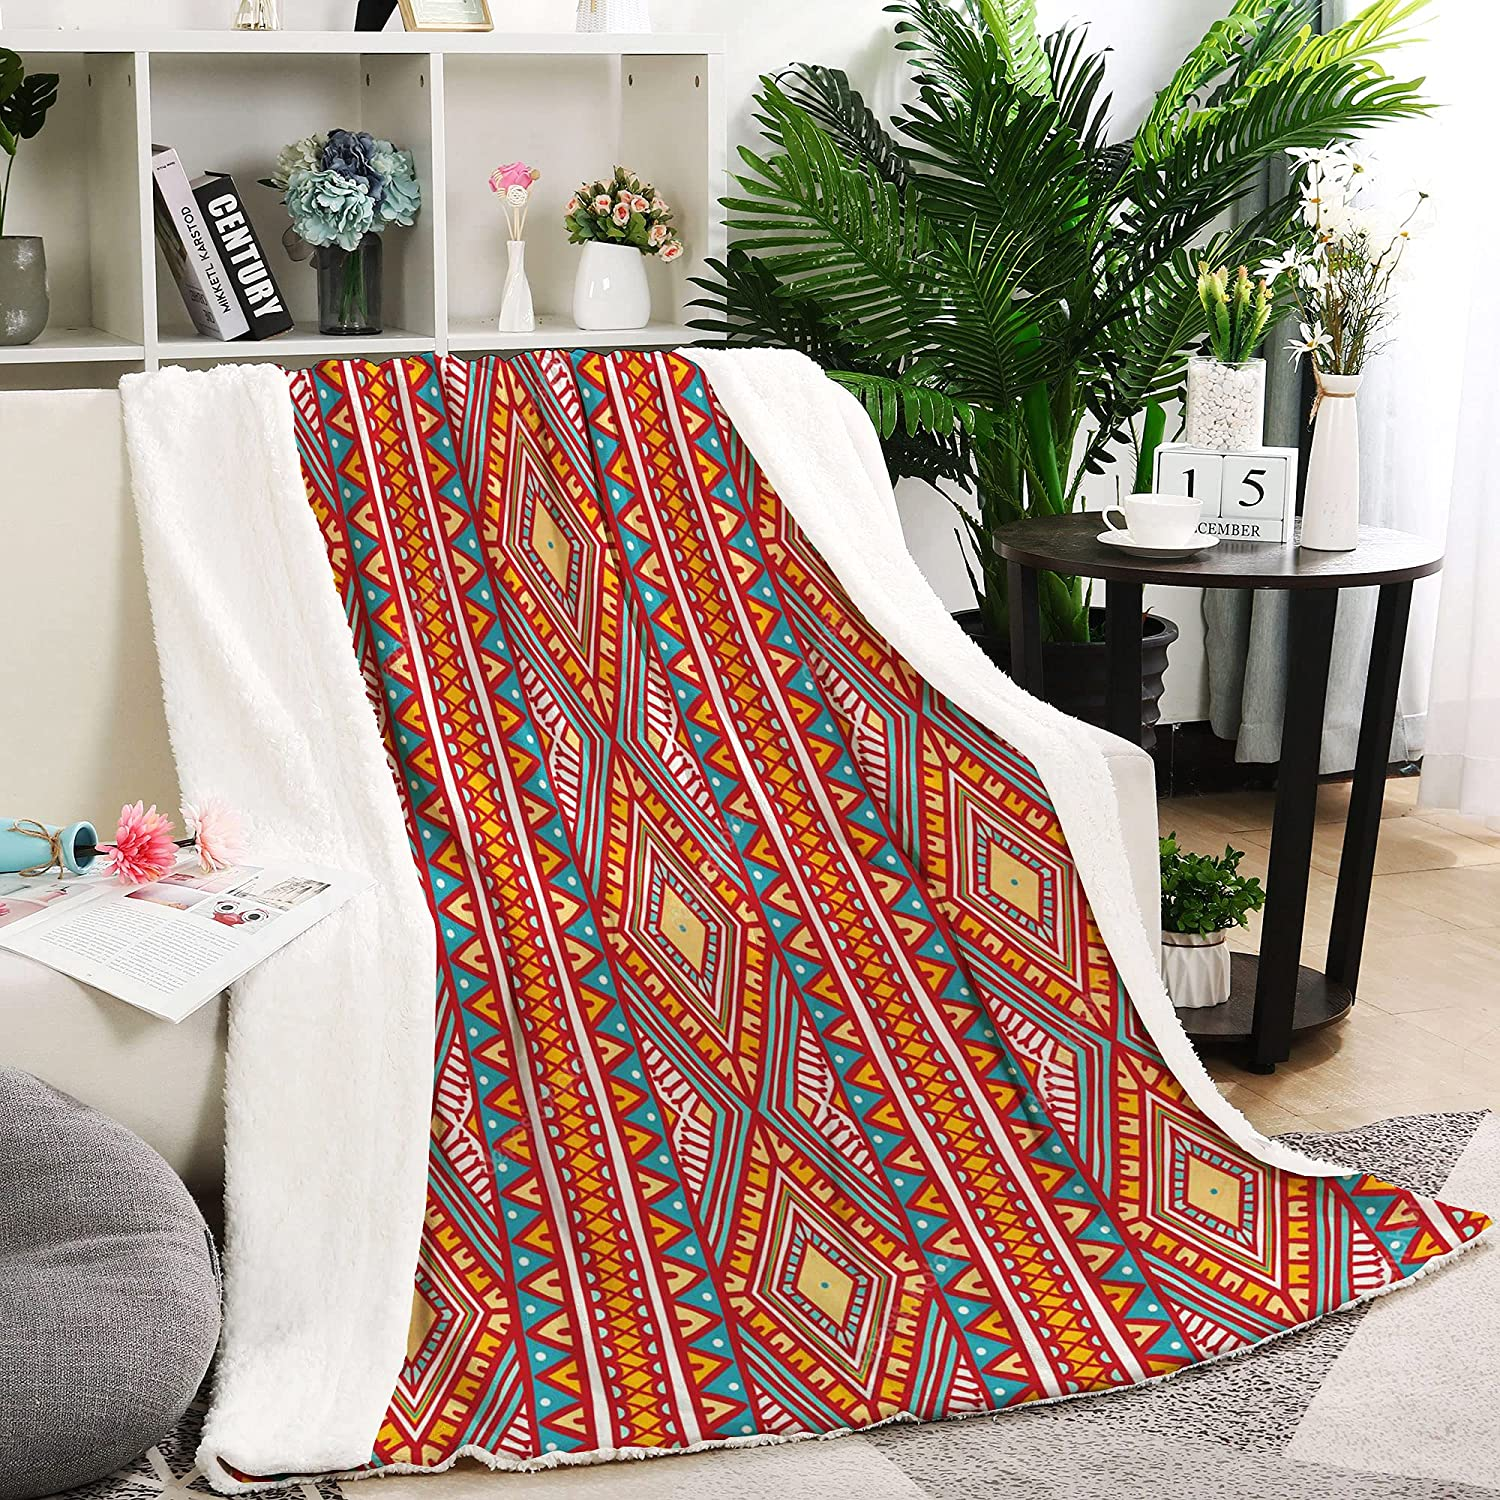 JLLIFE Charlotte Mall Boho Throw Blankets Sherpa Excellence Blanket Ultra-Soft Cozy